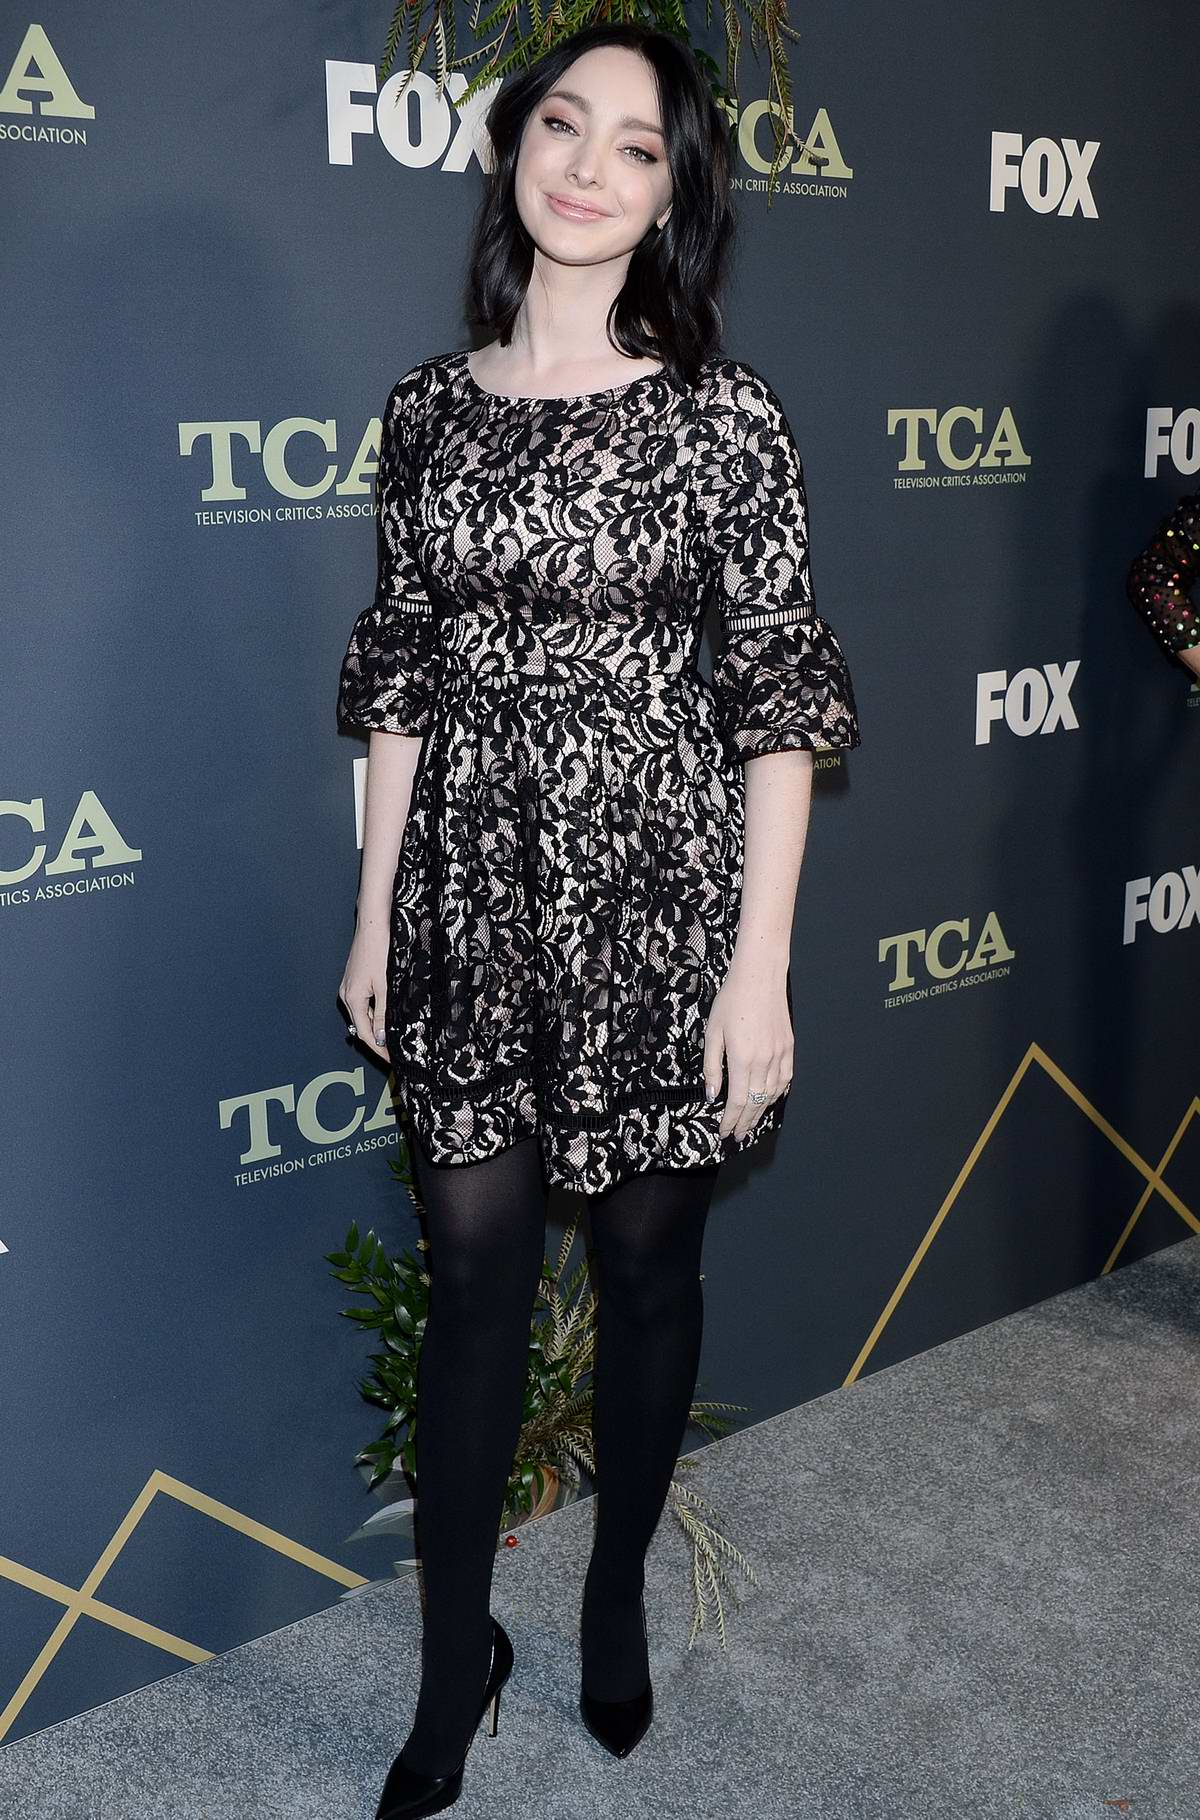 Emma Dumont attends the Fox Winter TCA 2019 at The Fig House in Los Angeles